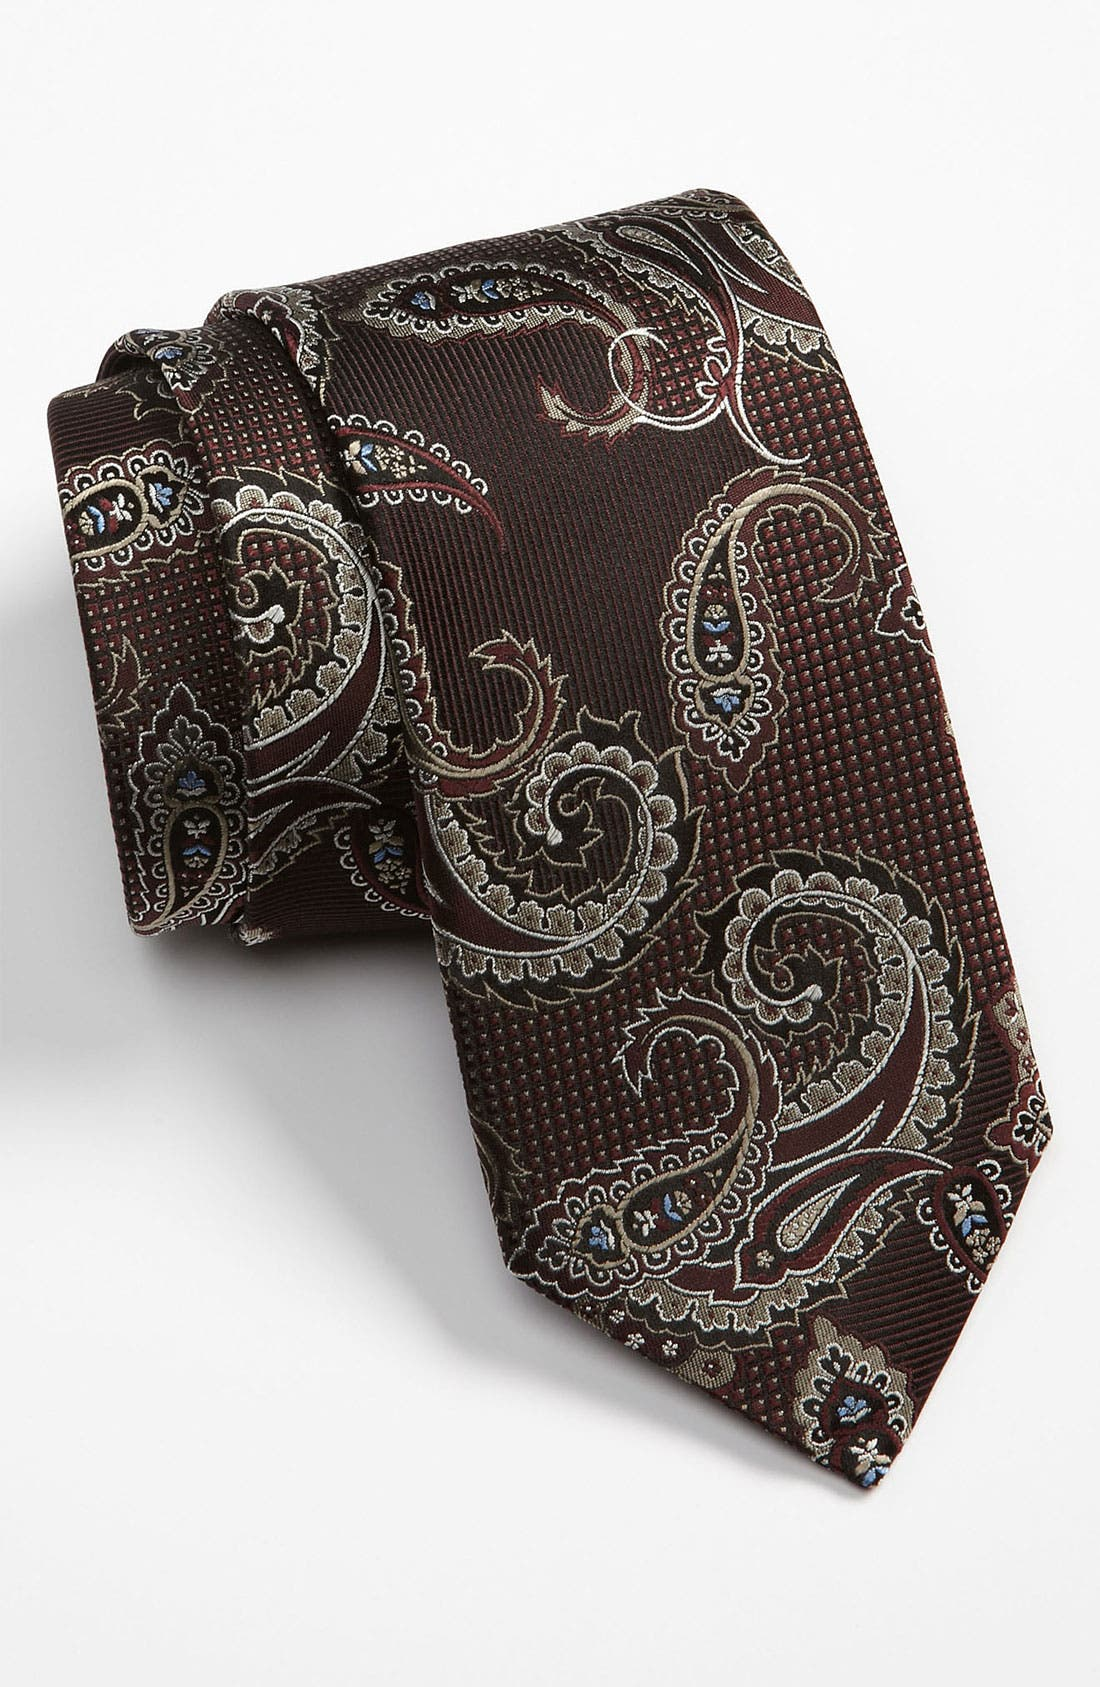 Main Image - J.Z. Richards Woven Silk Tie